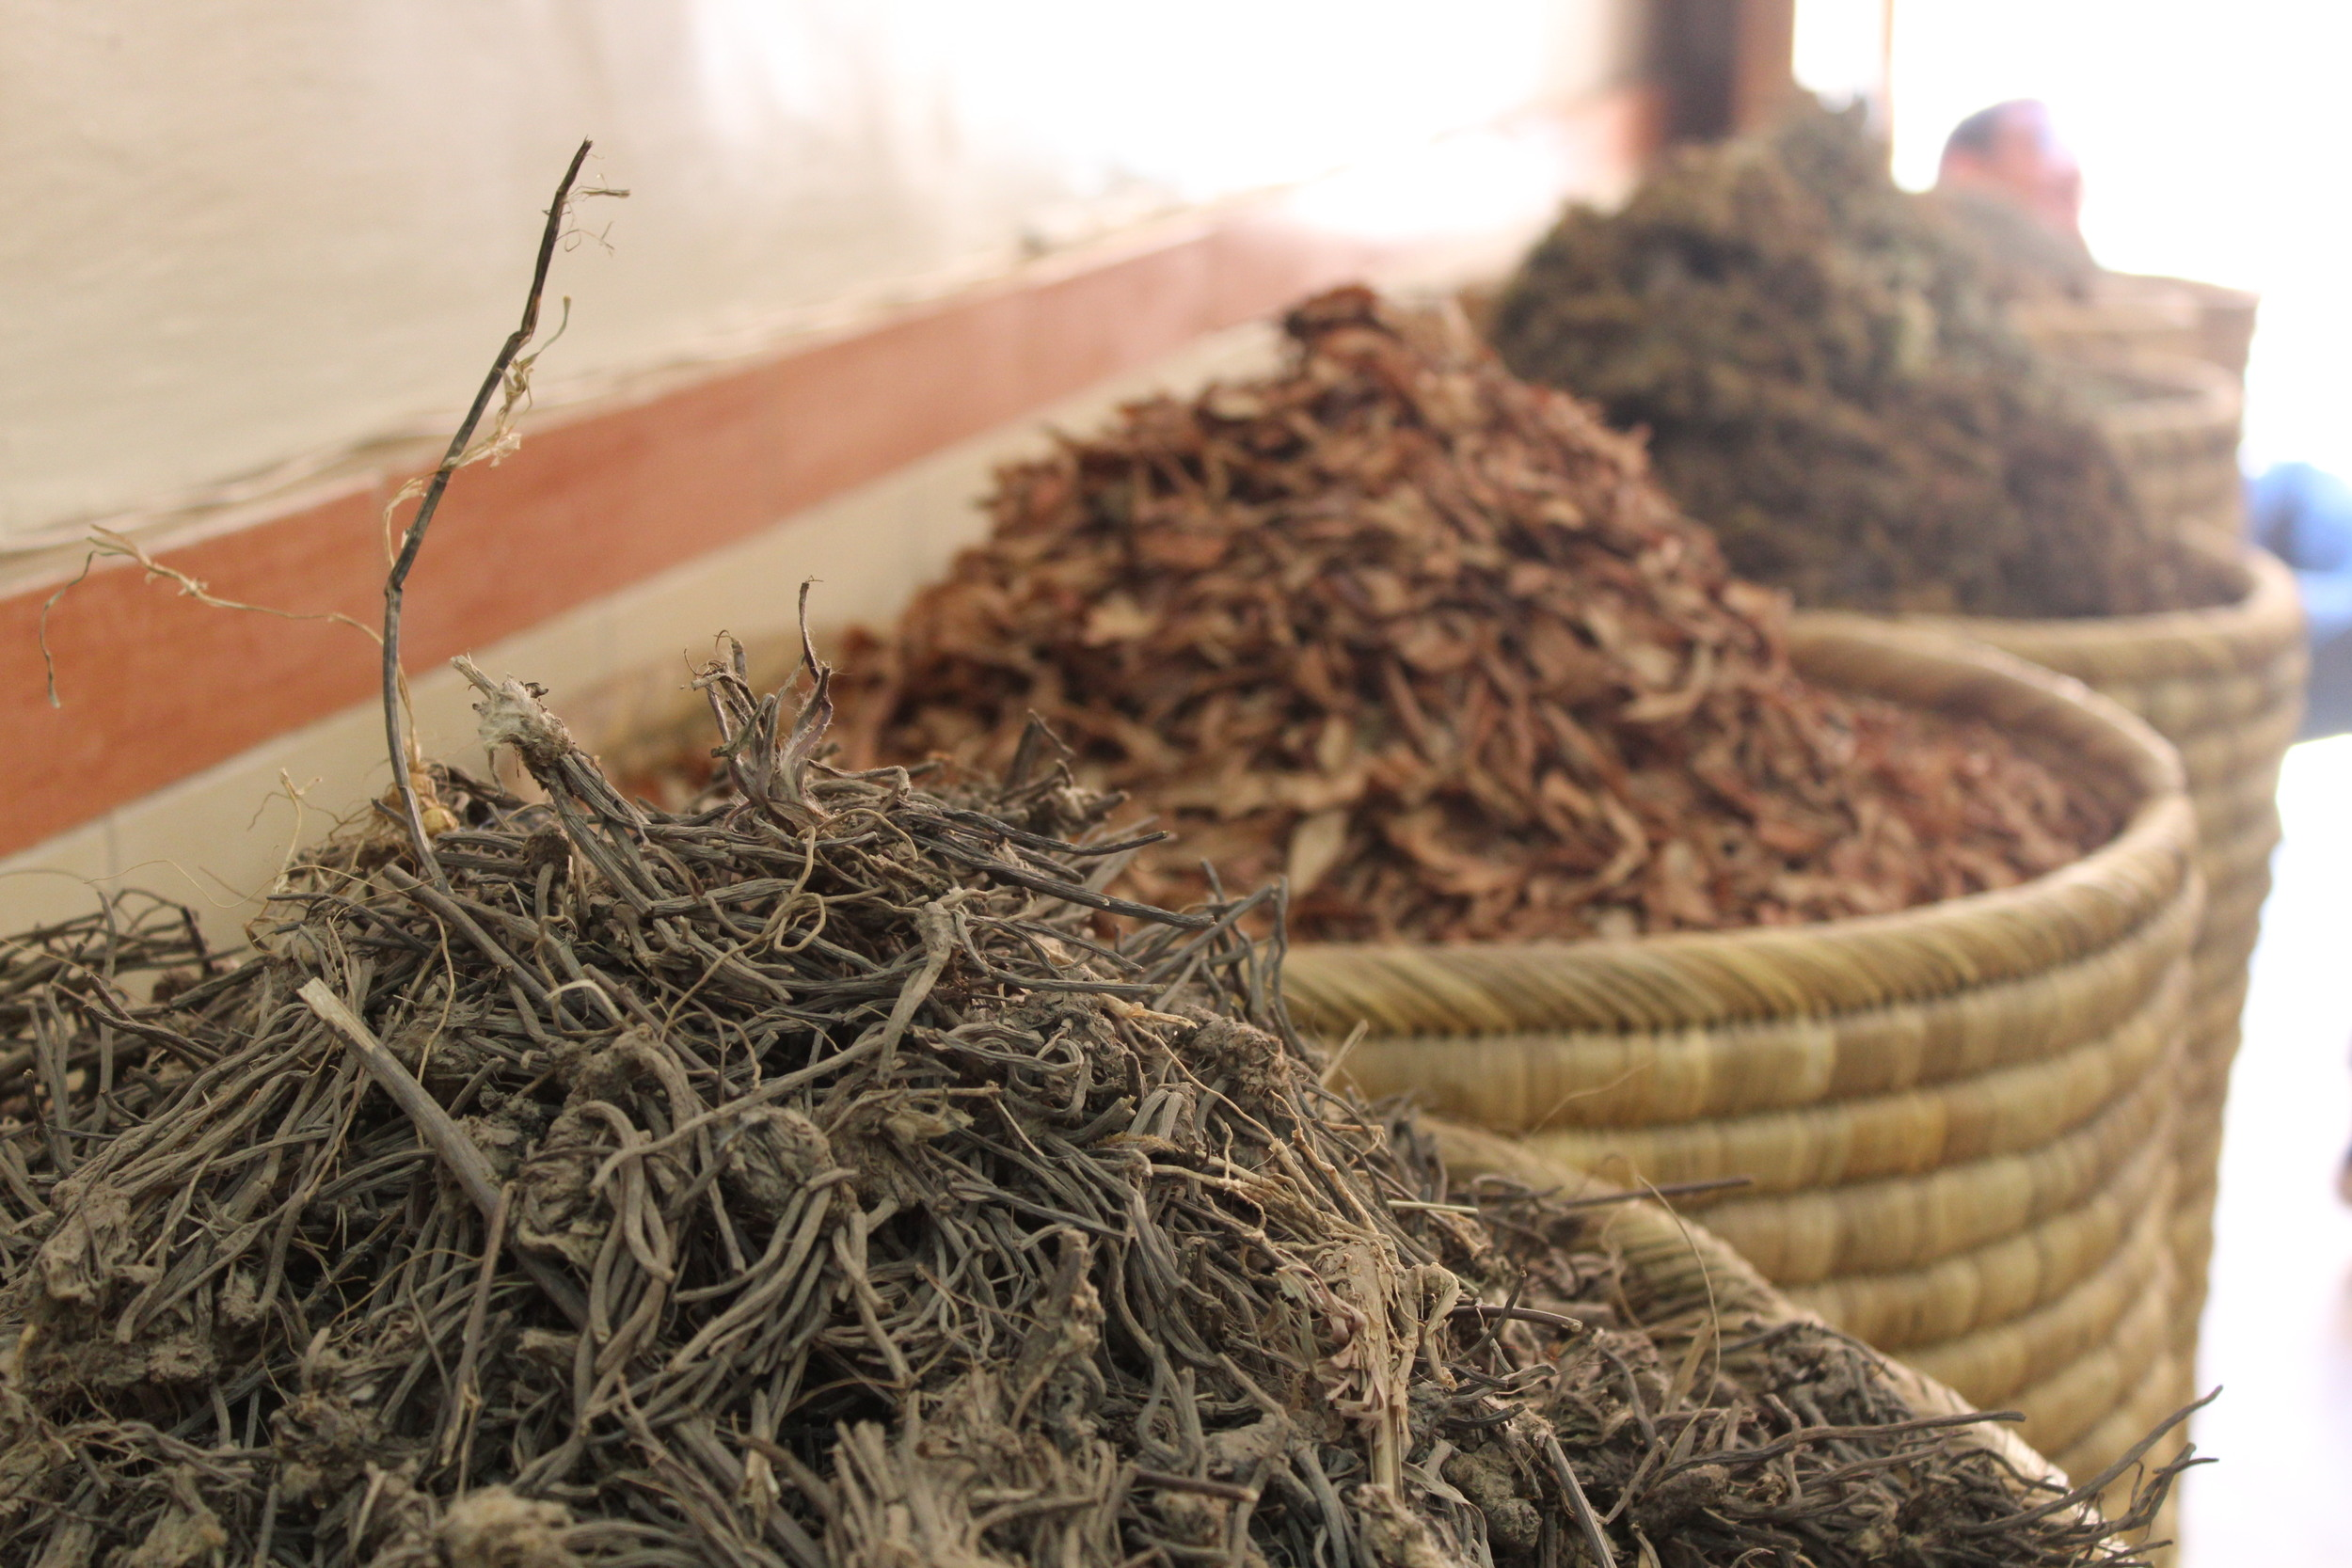 Spices - Photograph by Lauren Martin